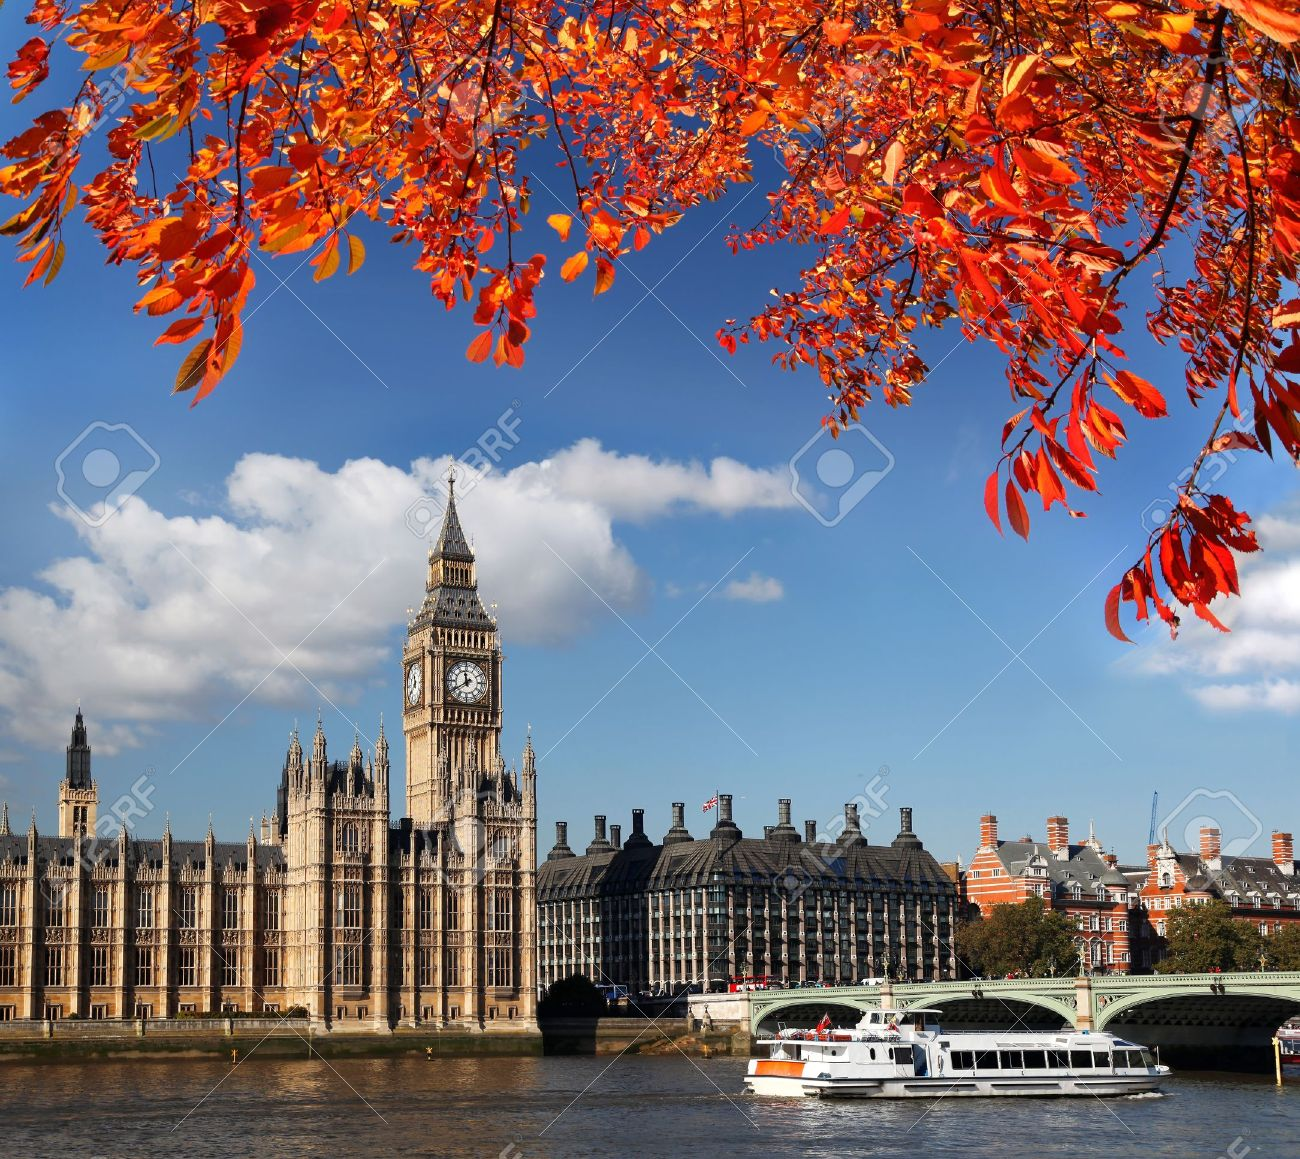 Big Ben with autumn leaves in London, England - 16325278